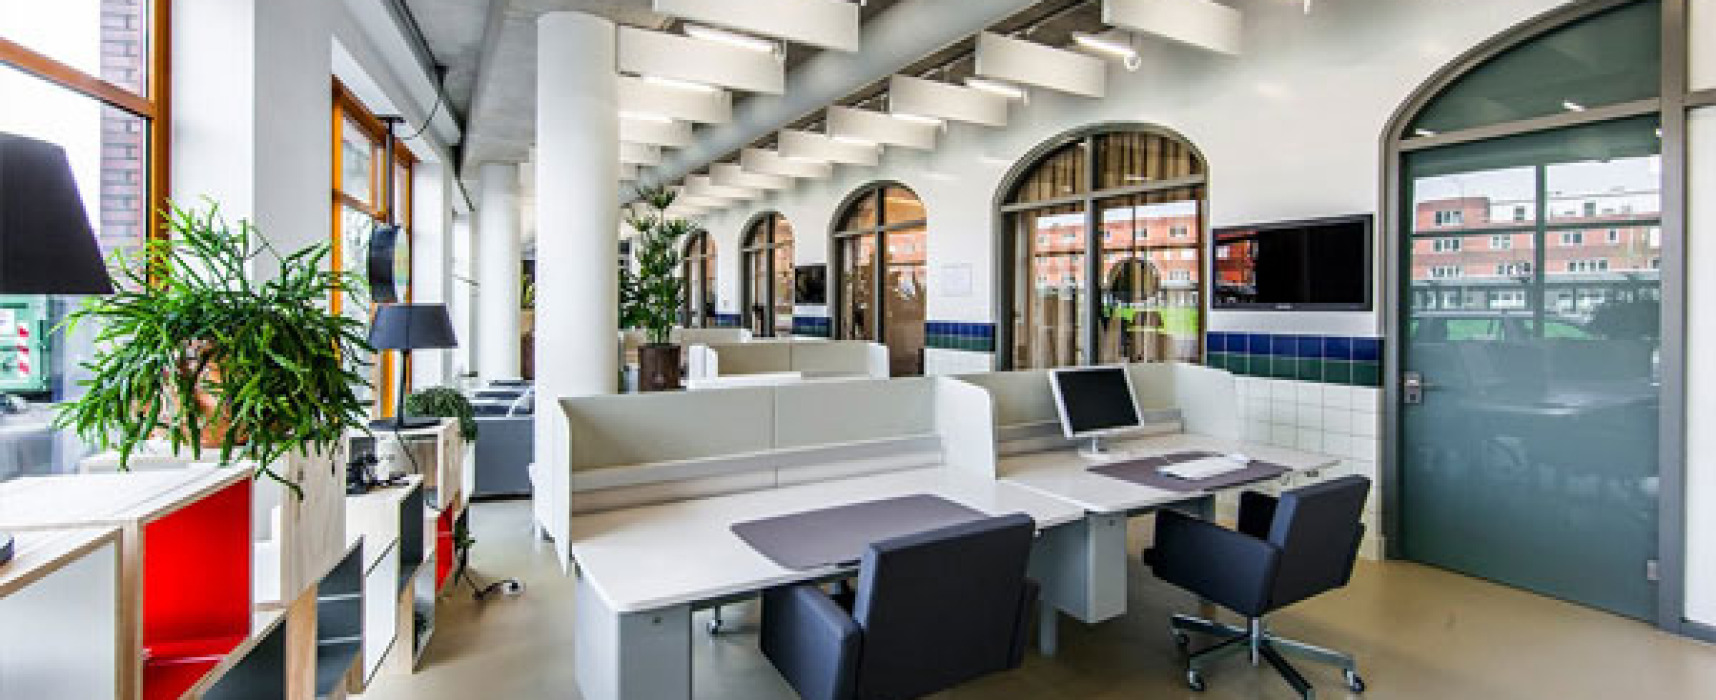 Trekkin' your way to better office space